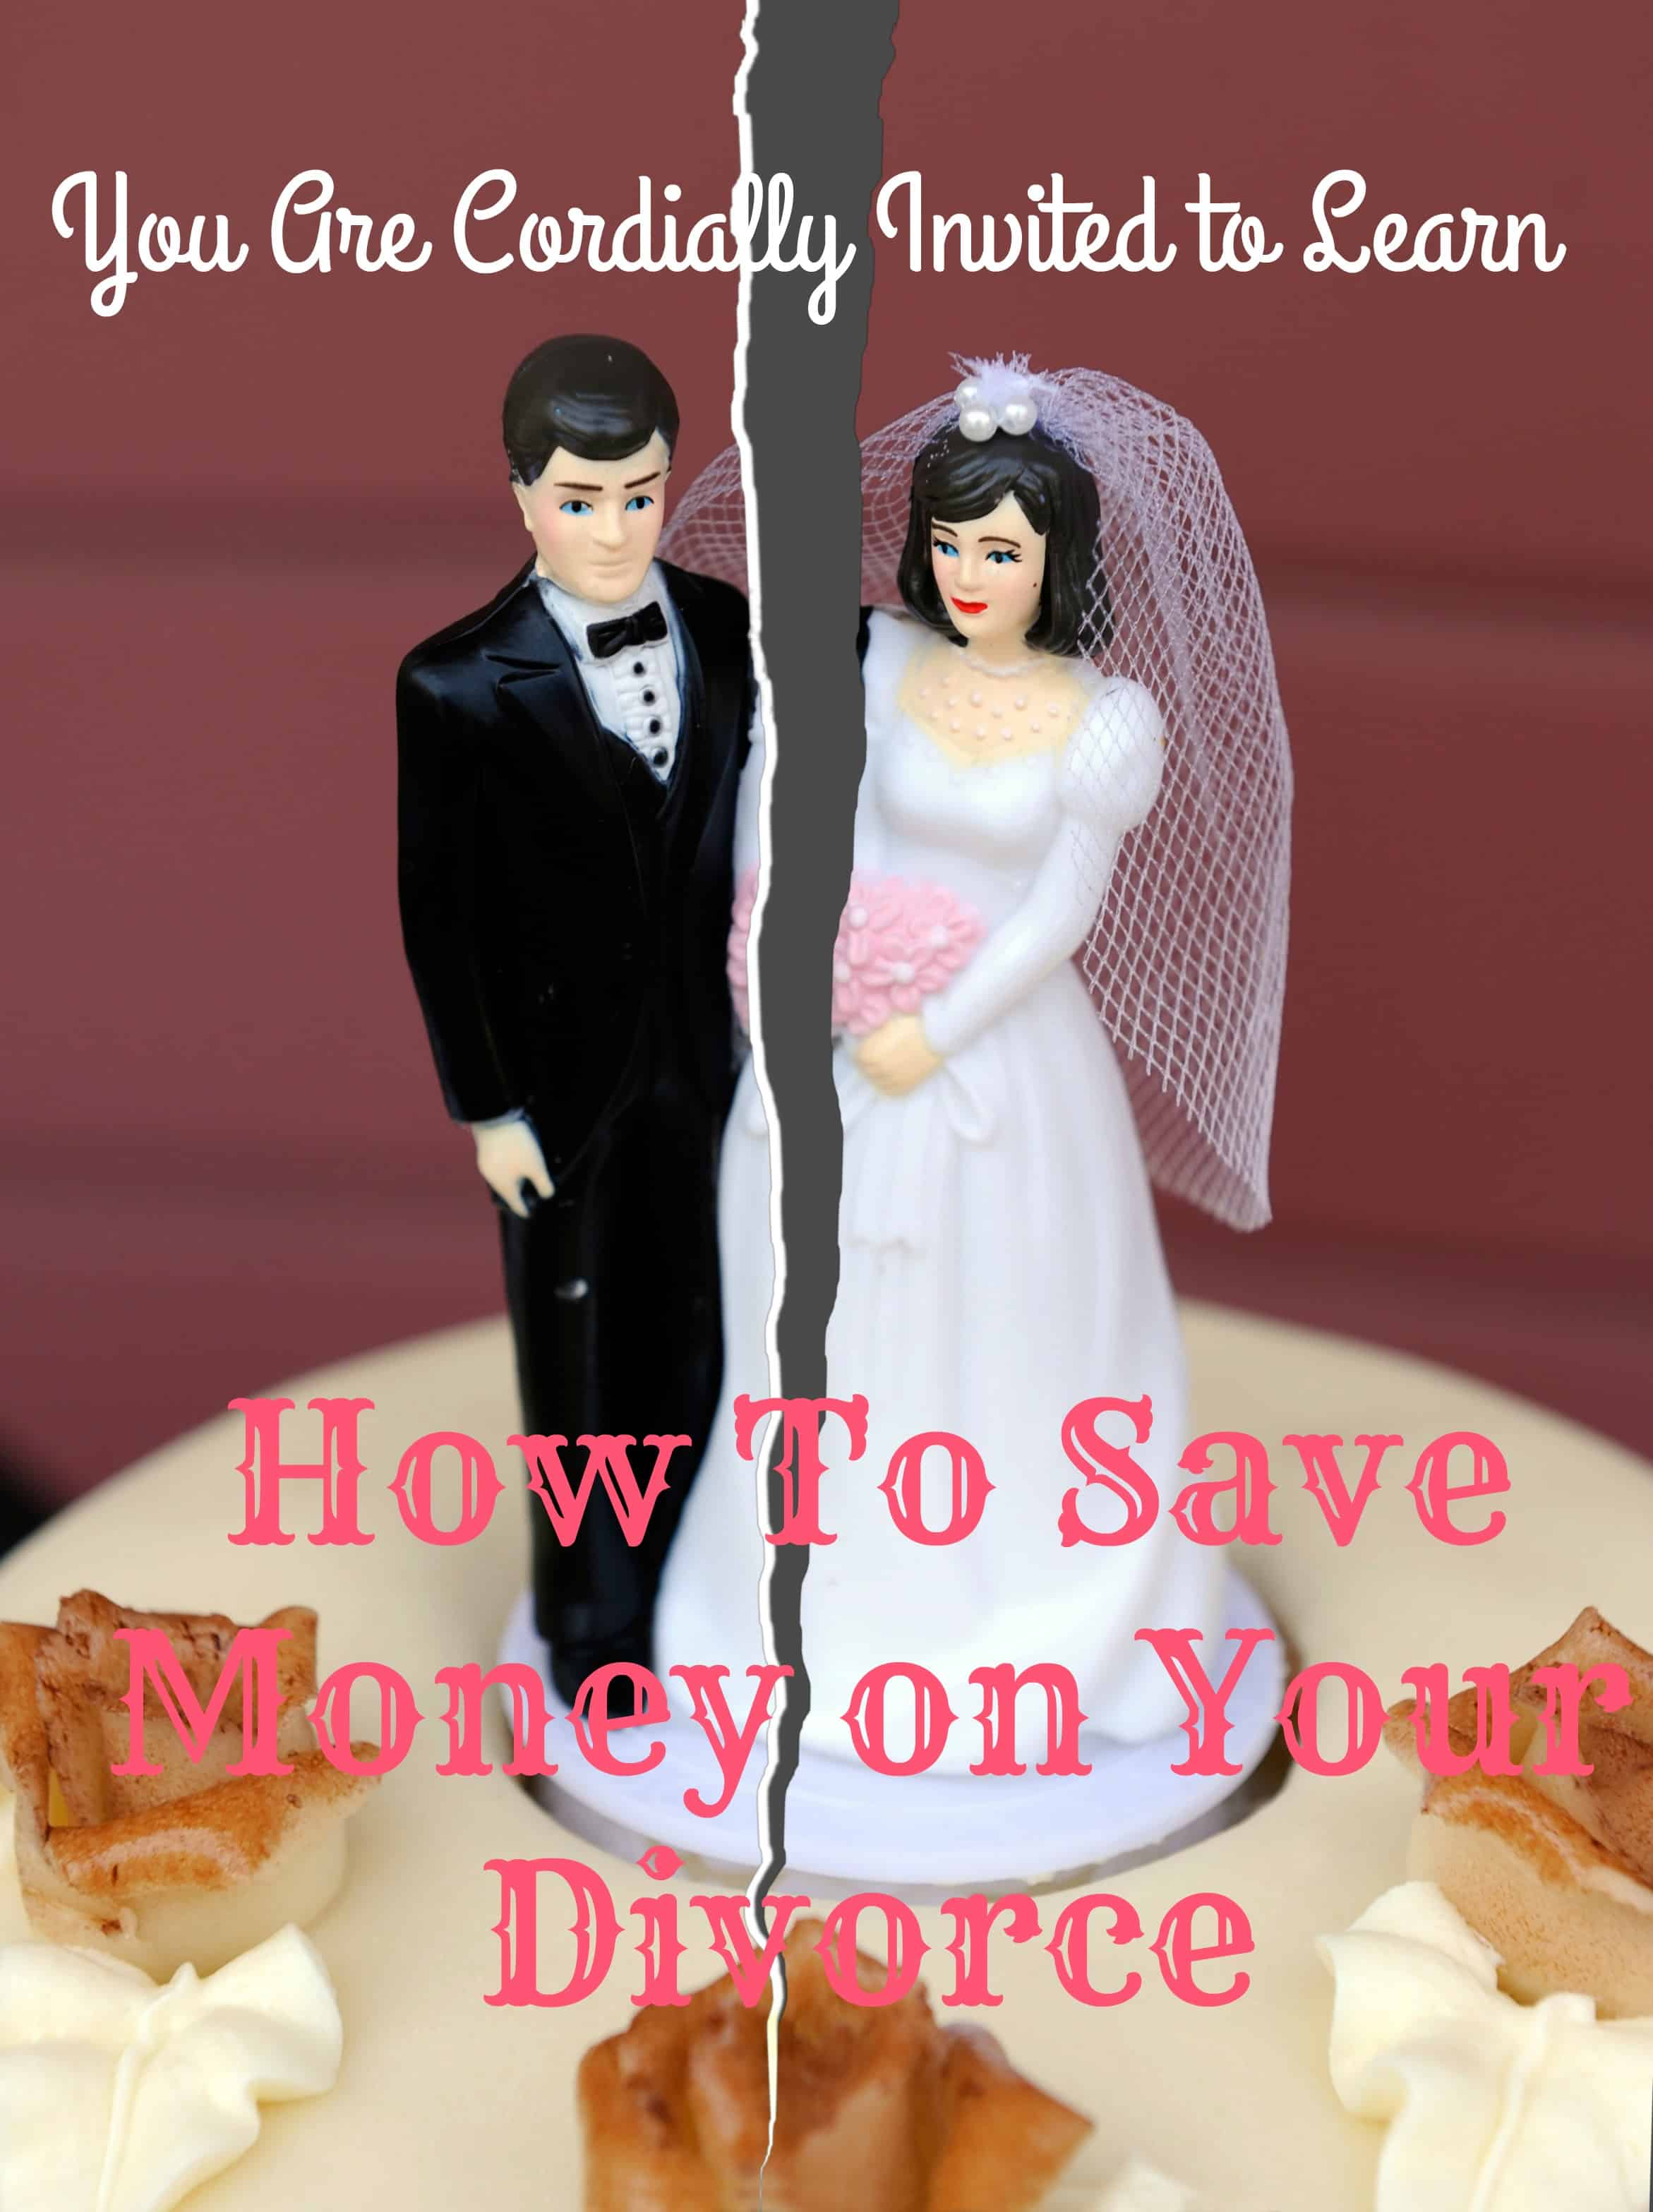 Save Money on Your Divorce